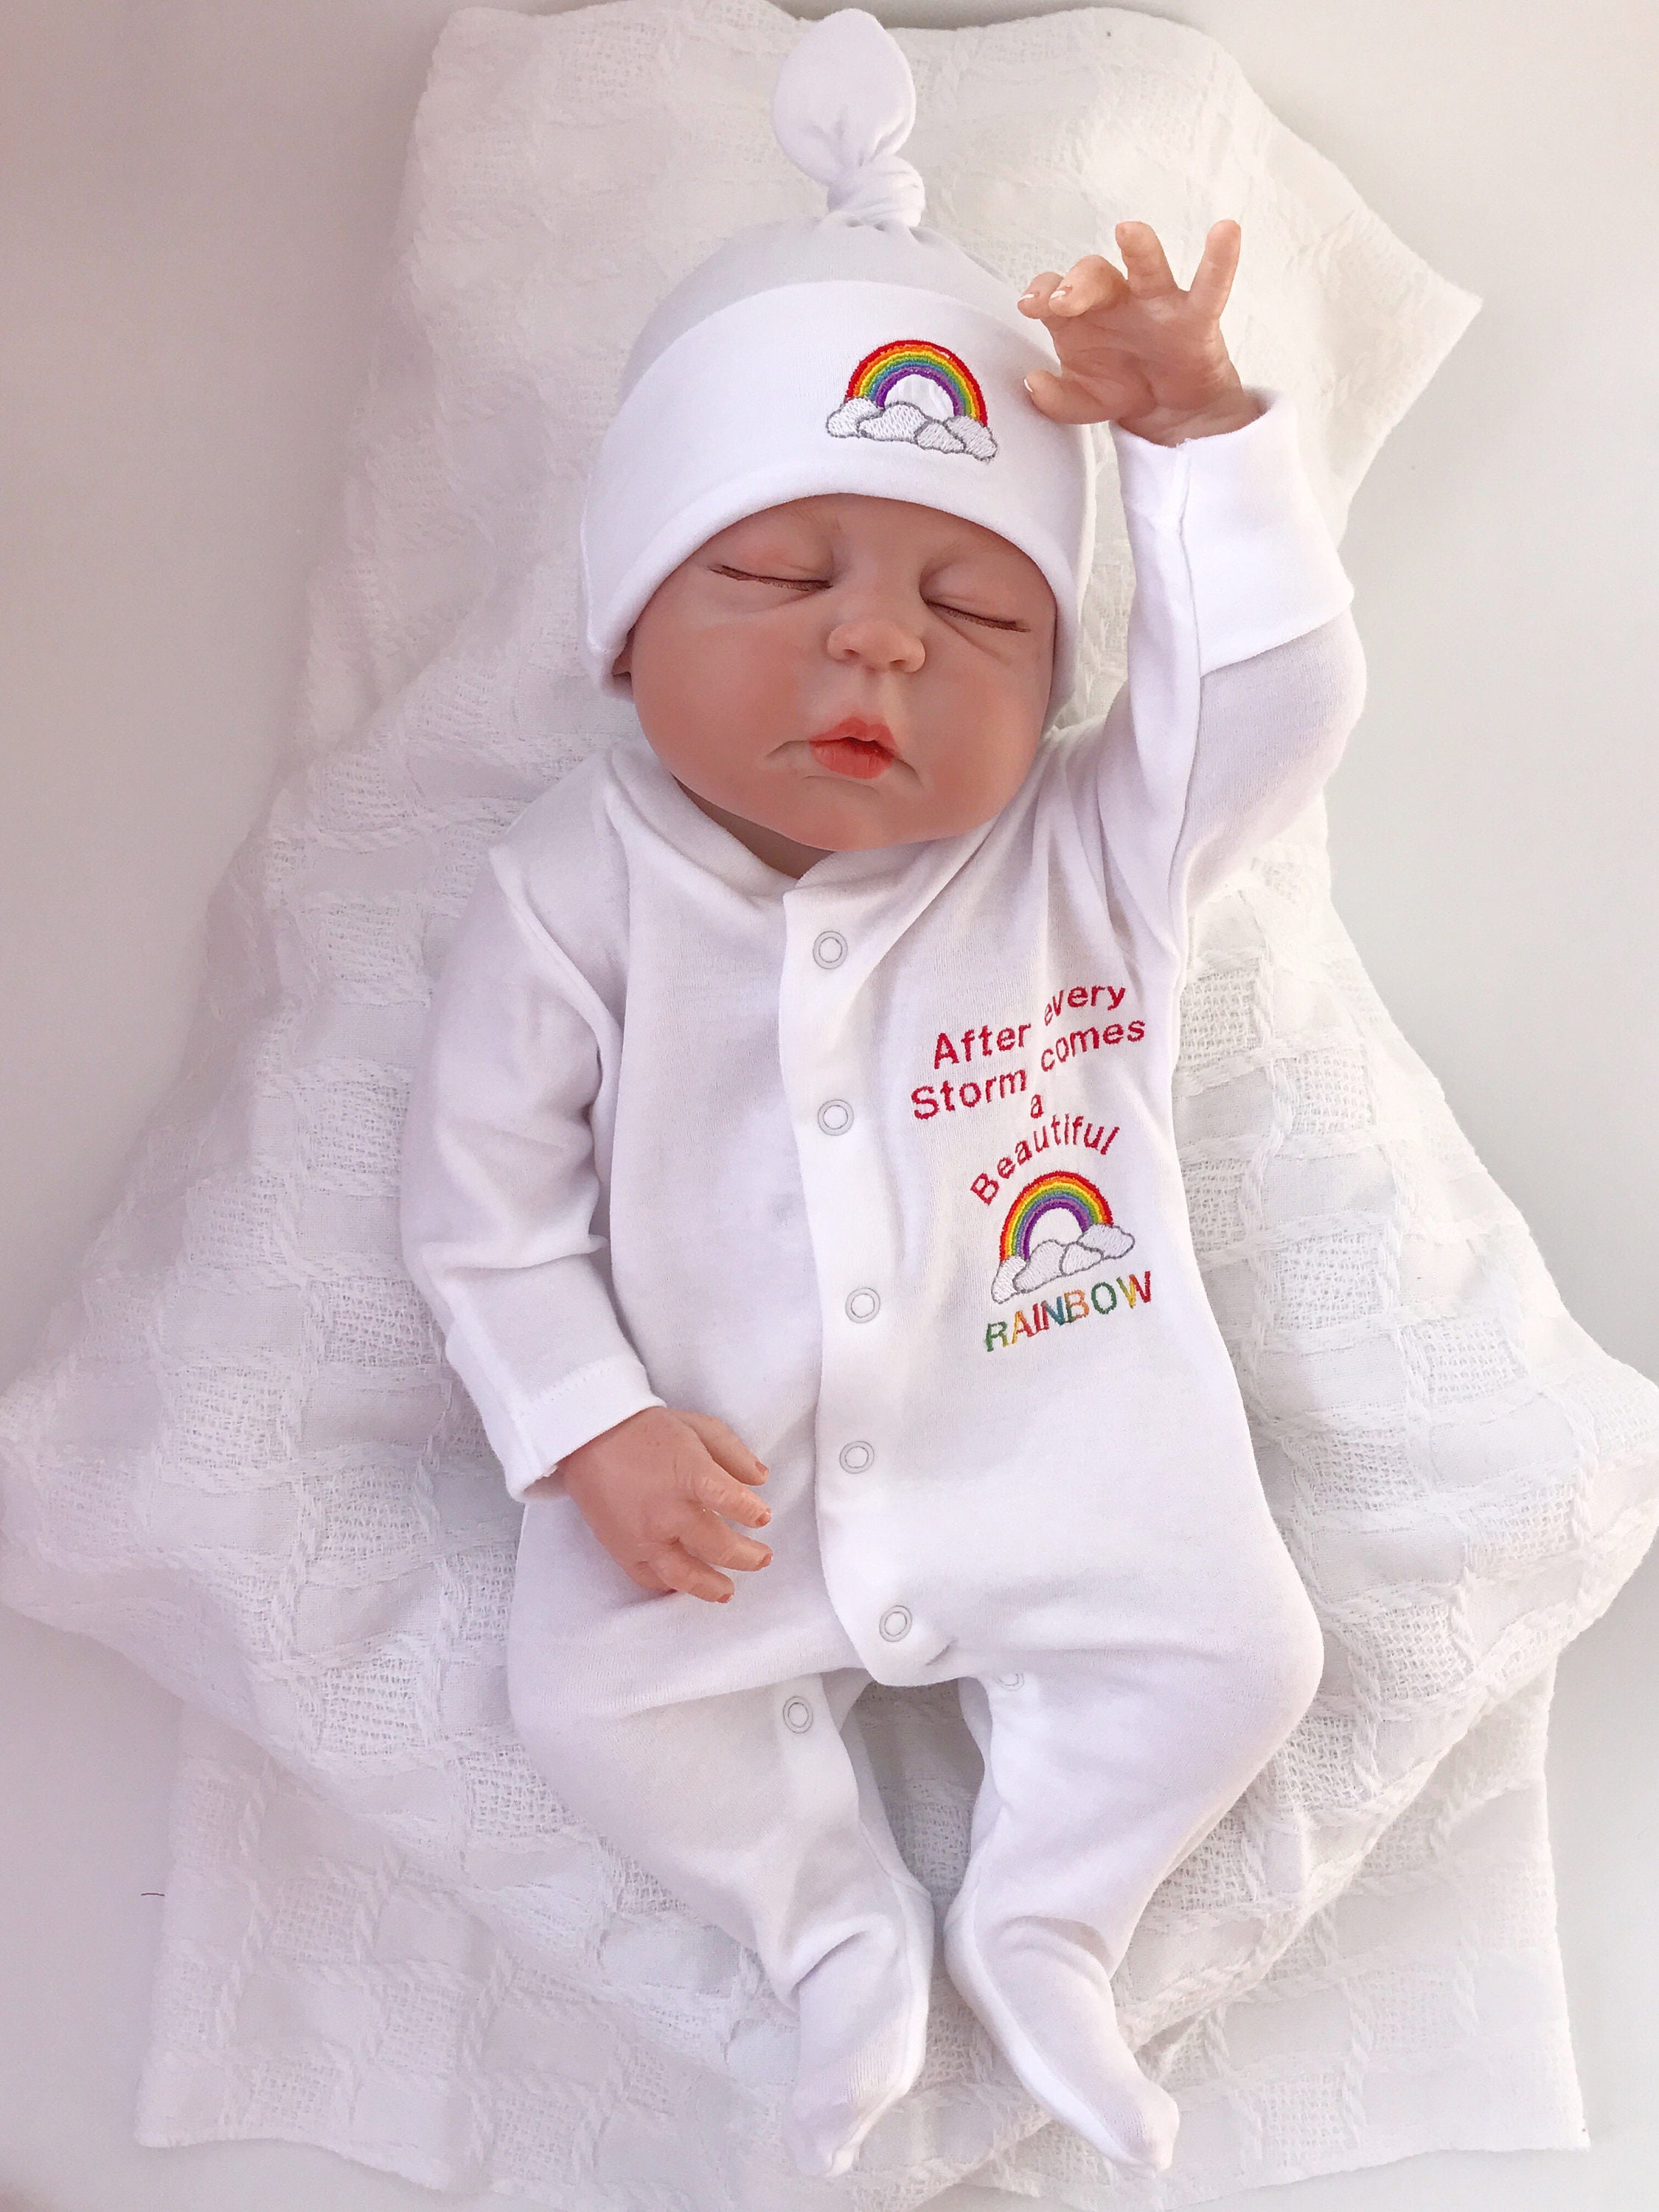 Rainbow Baby Clothes baby shower gifts Rainbow baby baby Girl clothes Baby boy clothes baby Rompers Baby Hats Rainbow babyshower gift